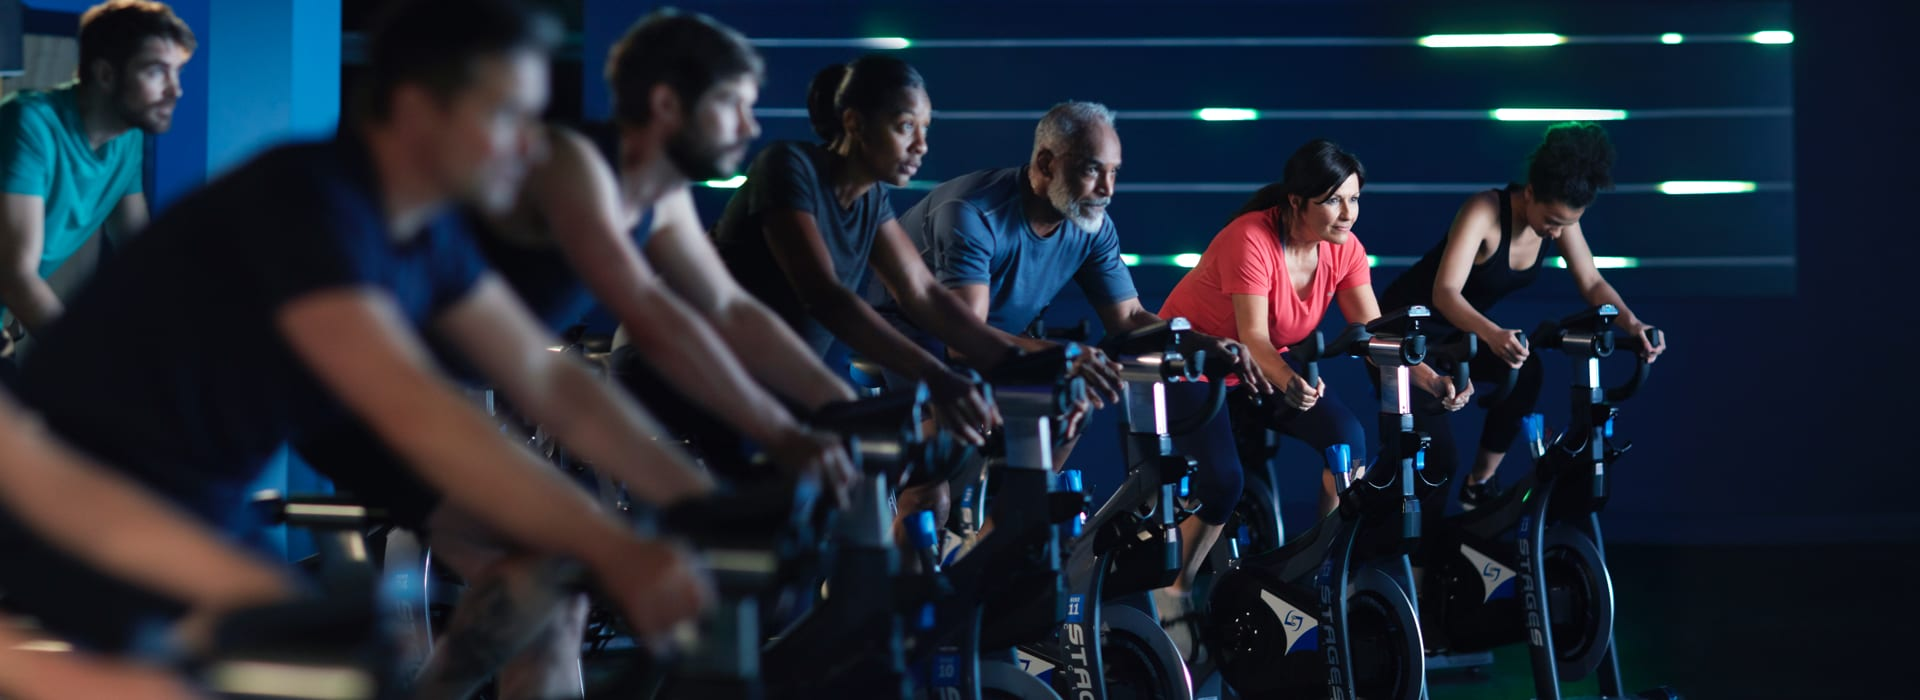 A group of people cycling in an exercise class